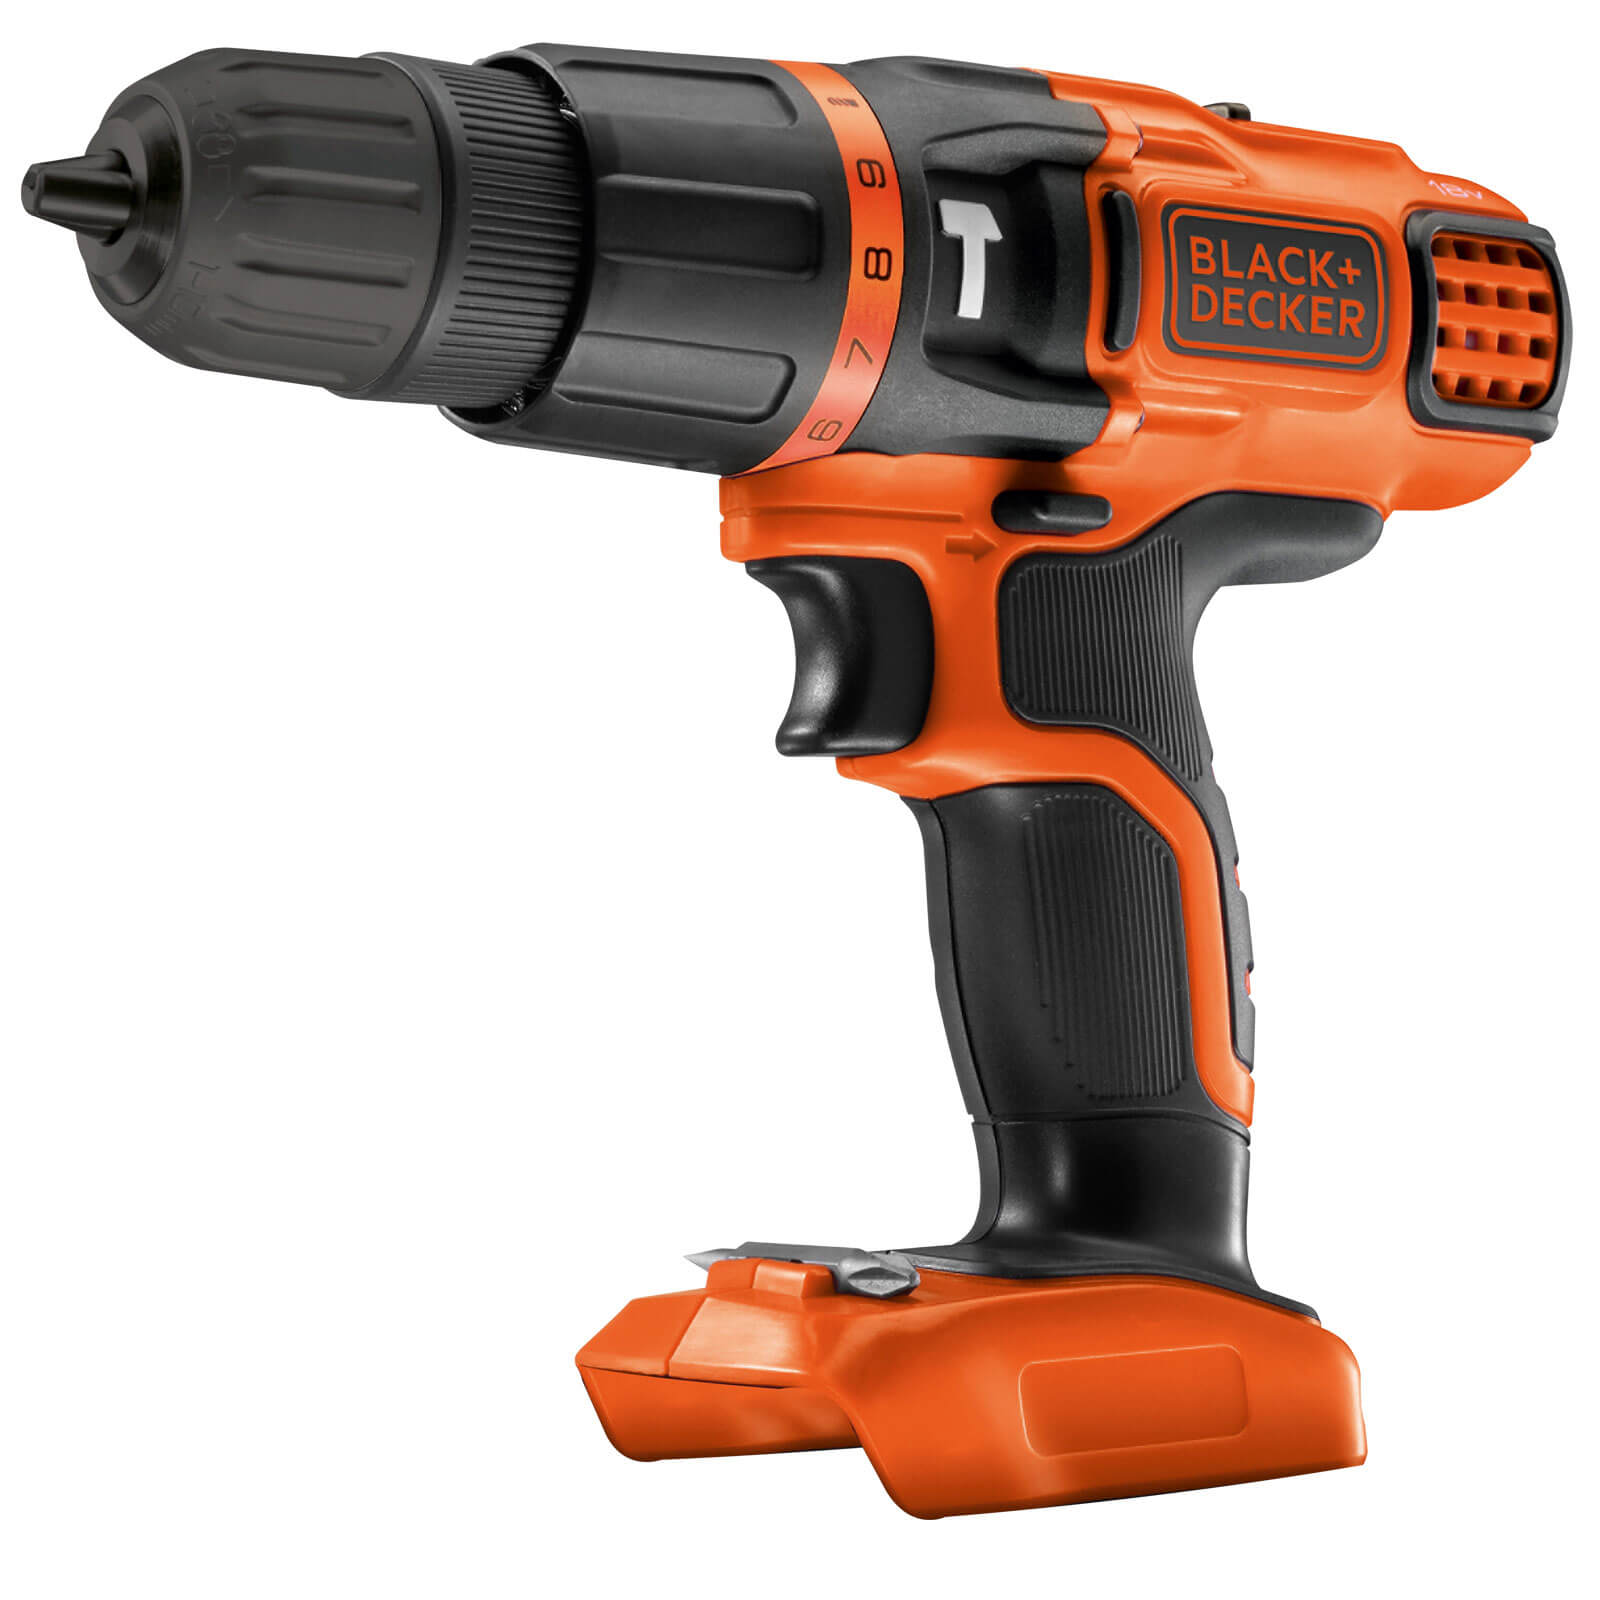 buy cheap black and decker battery charger compare power tools prices for best uk deals. Black Bedroom Furniture Sets. Home Design Ideas